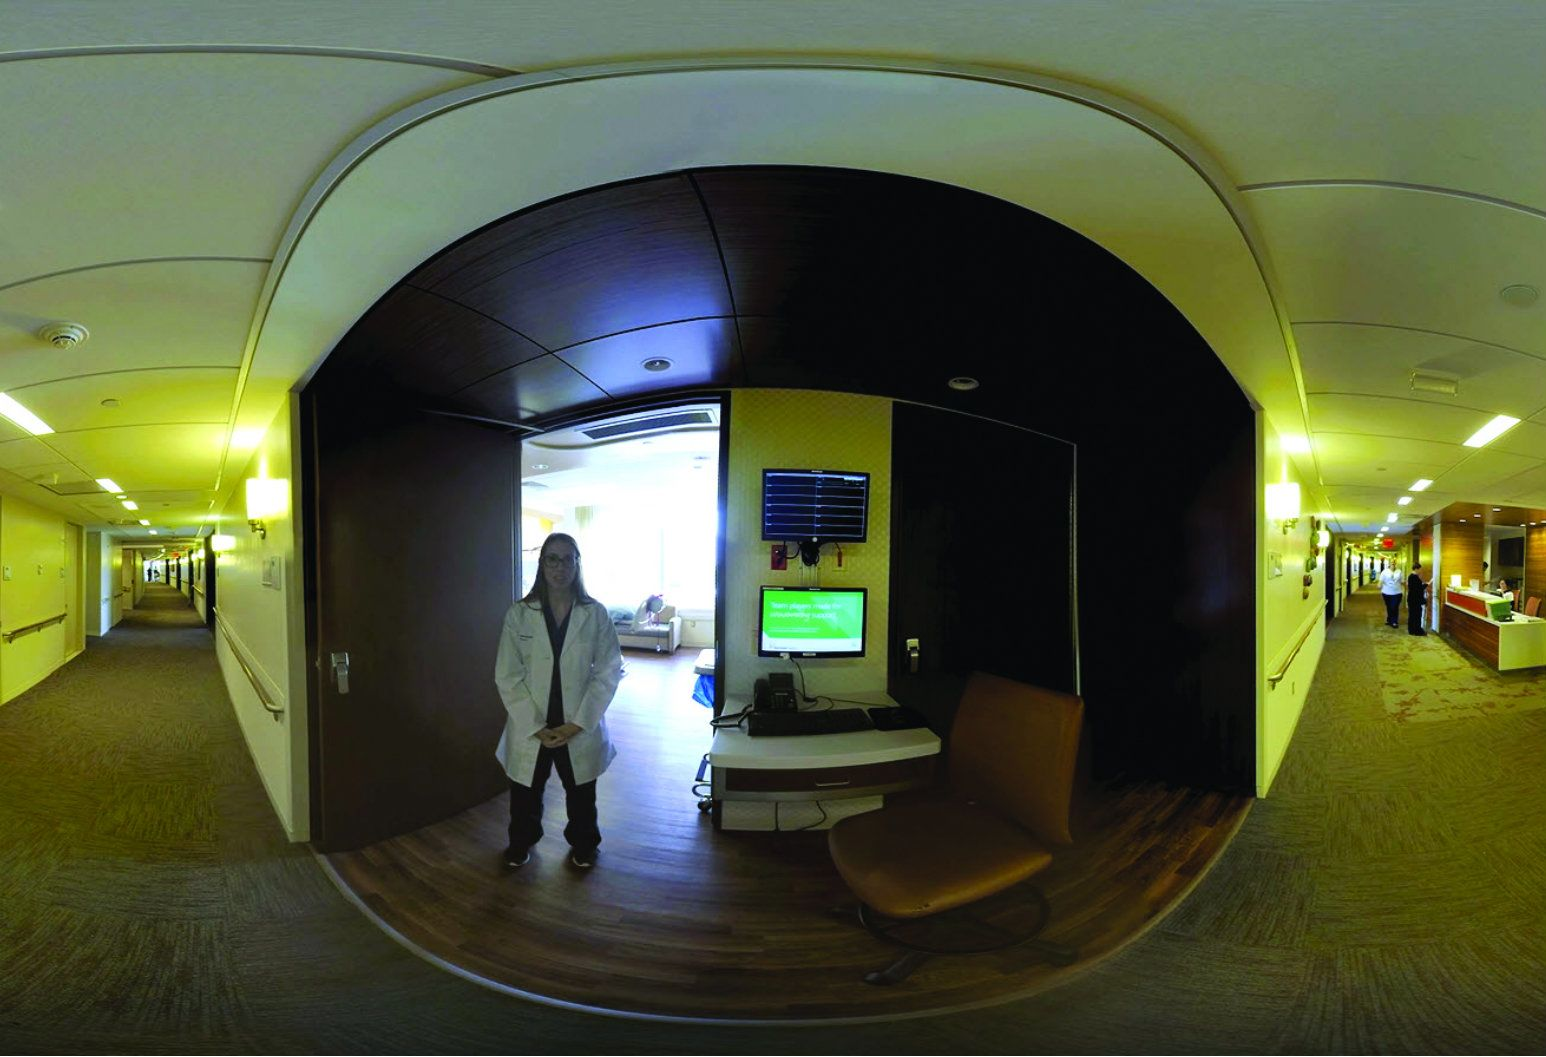 A woman wearing a lab coat over doctor's scrubs stands in front of the open door of a virtual reality training room. Bright light streams out the door. Next to the woman and the door is a desk with a keyboard and an intercom on it, with two monitors attached to the wall it stands against. On the left and right of the room, the rest of the hallway can be seen. It is long and carpeted. Northwell Health's Center for Learning and Innovation has begun including virtual reality simulation training in its education programs to develop medical students' situational awareness.